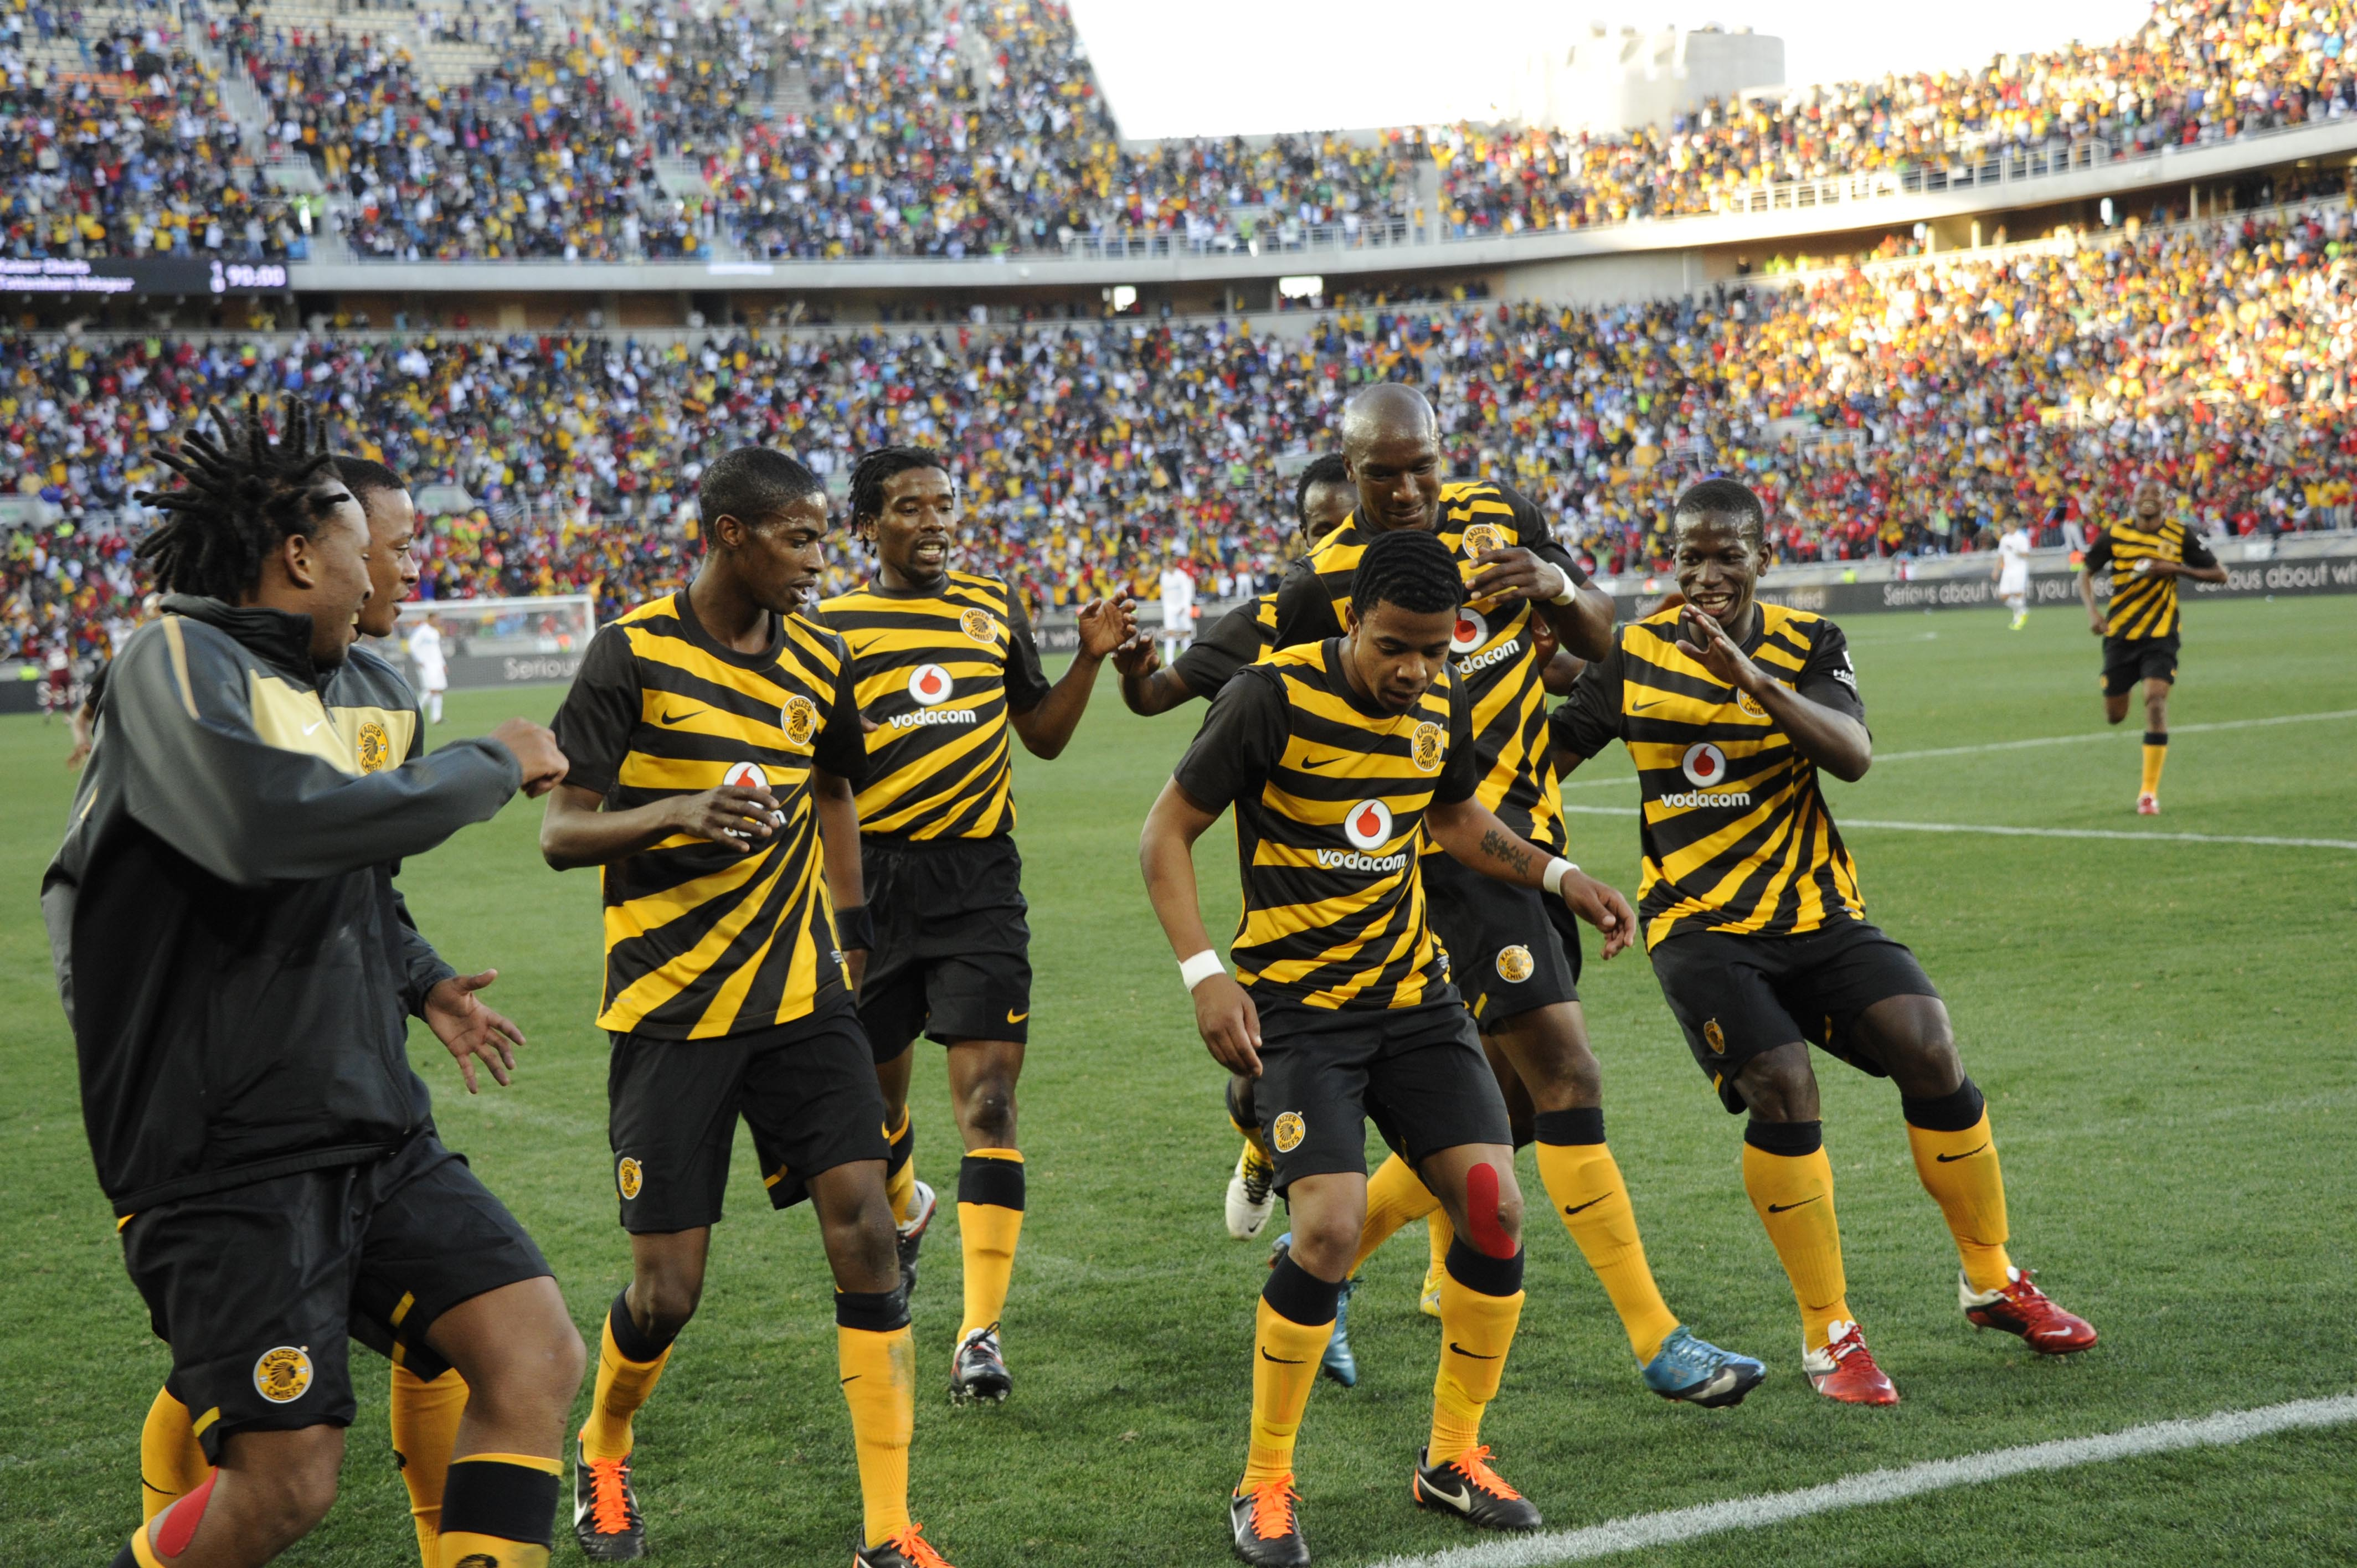 Telkom knockout cup prizes for games